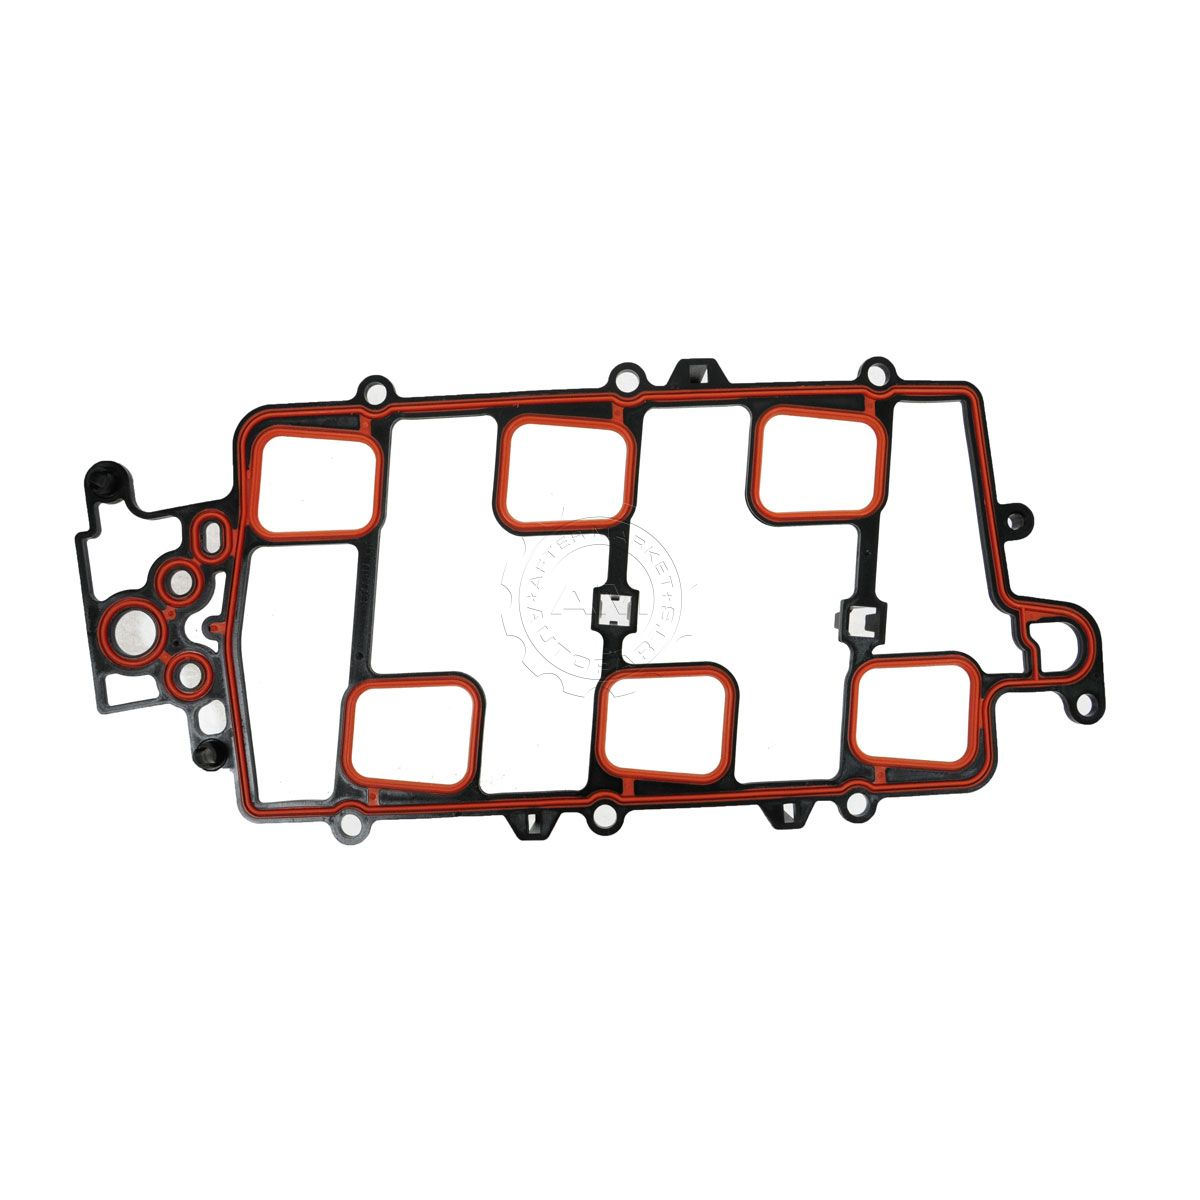 Intake Manifold Gasket For 95-05 Buick Chevy Pontiac